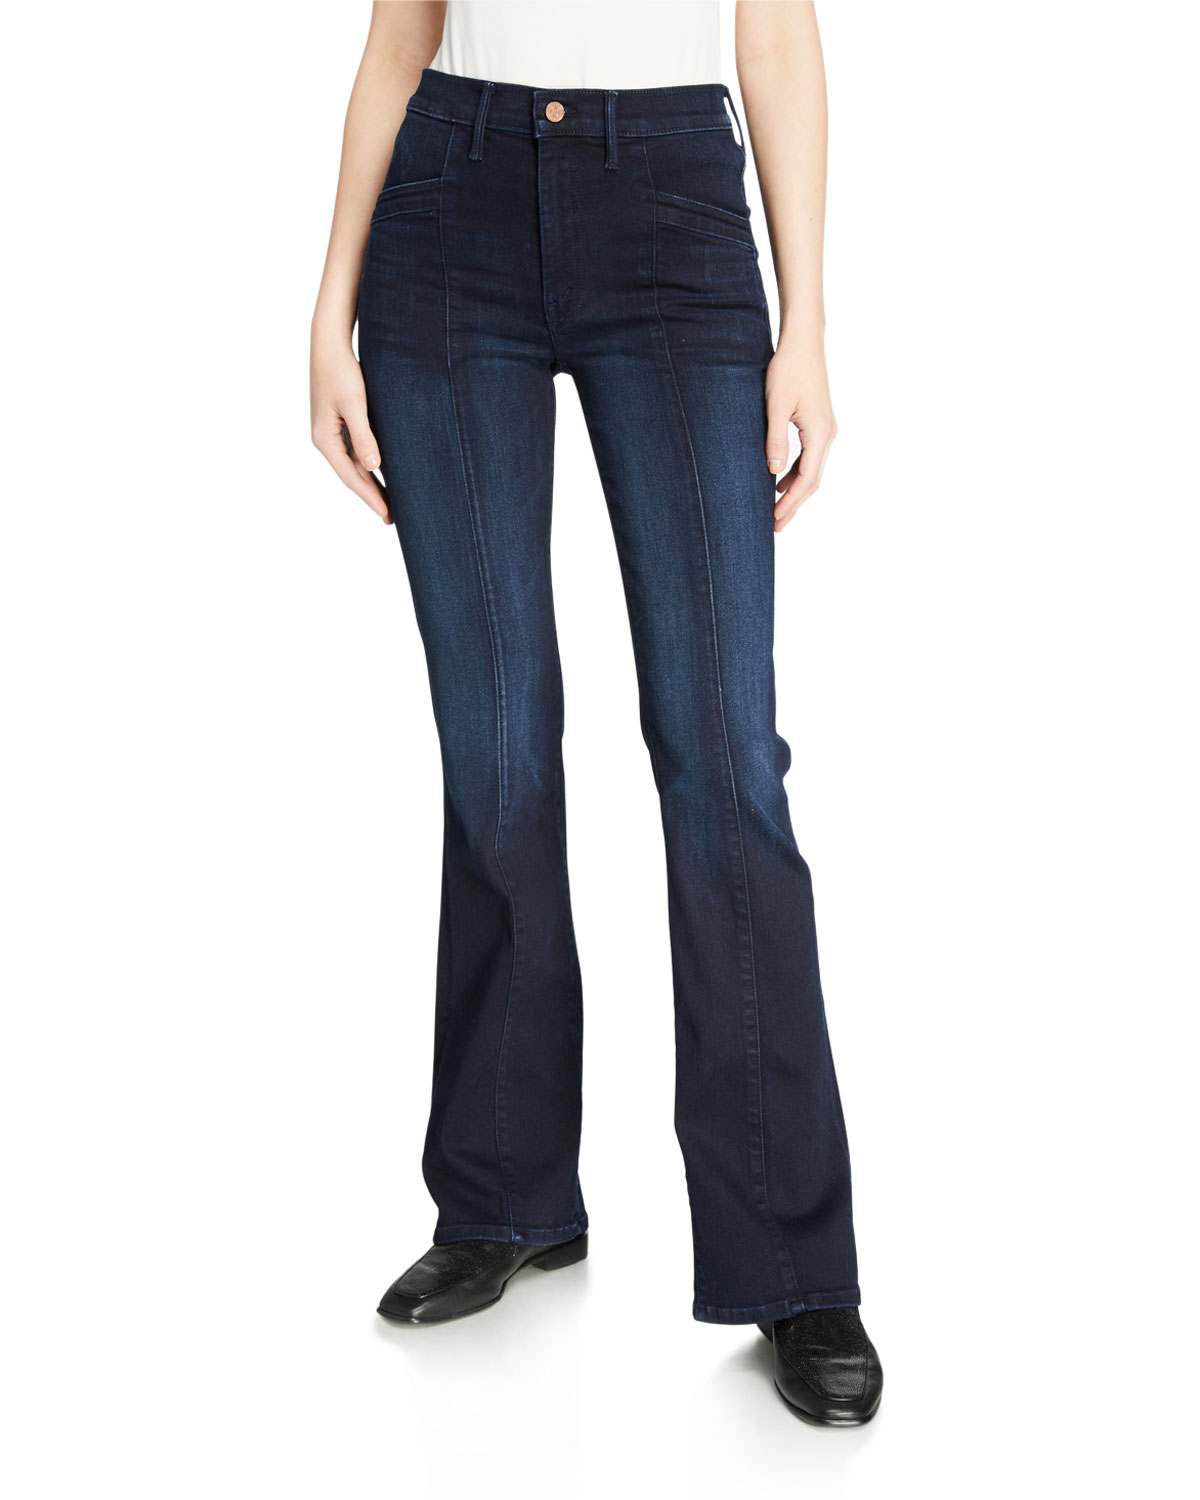 Mother Jeans THE SLANT DRAMA BOOT-CUT JEANS